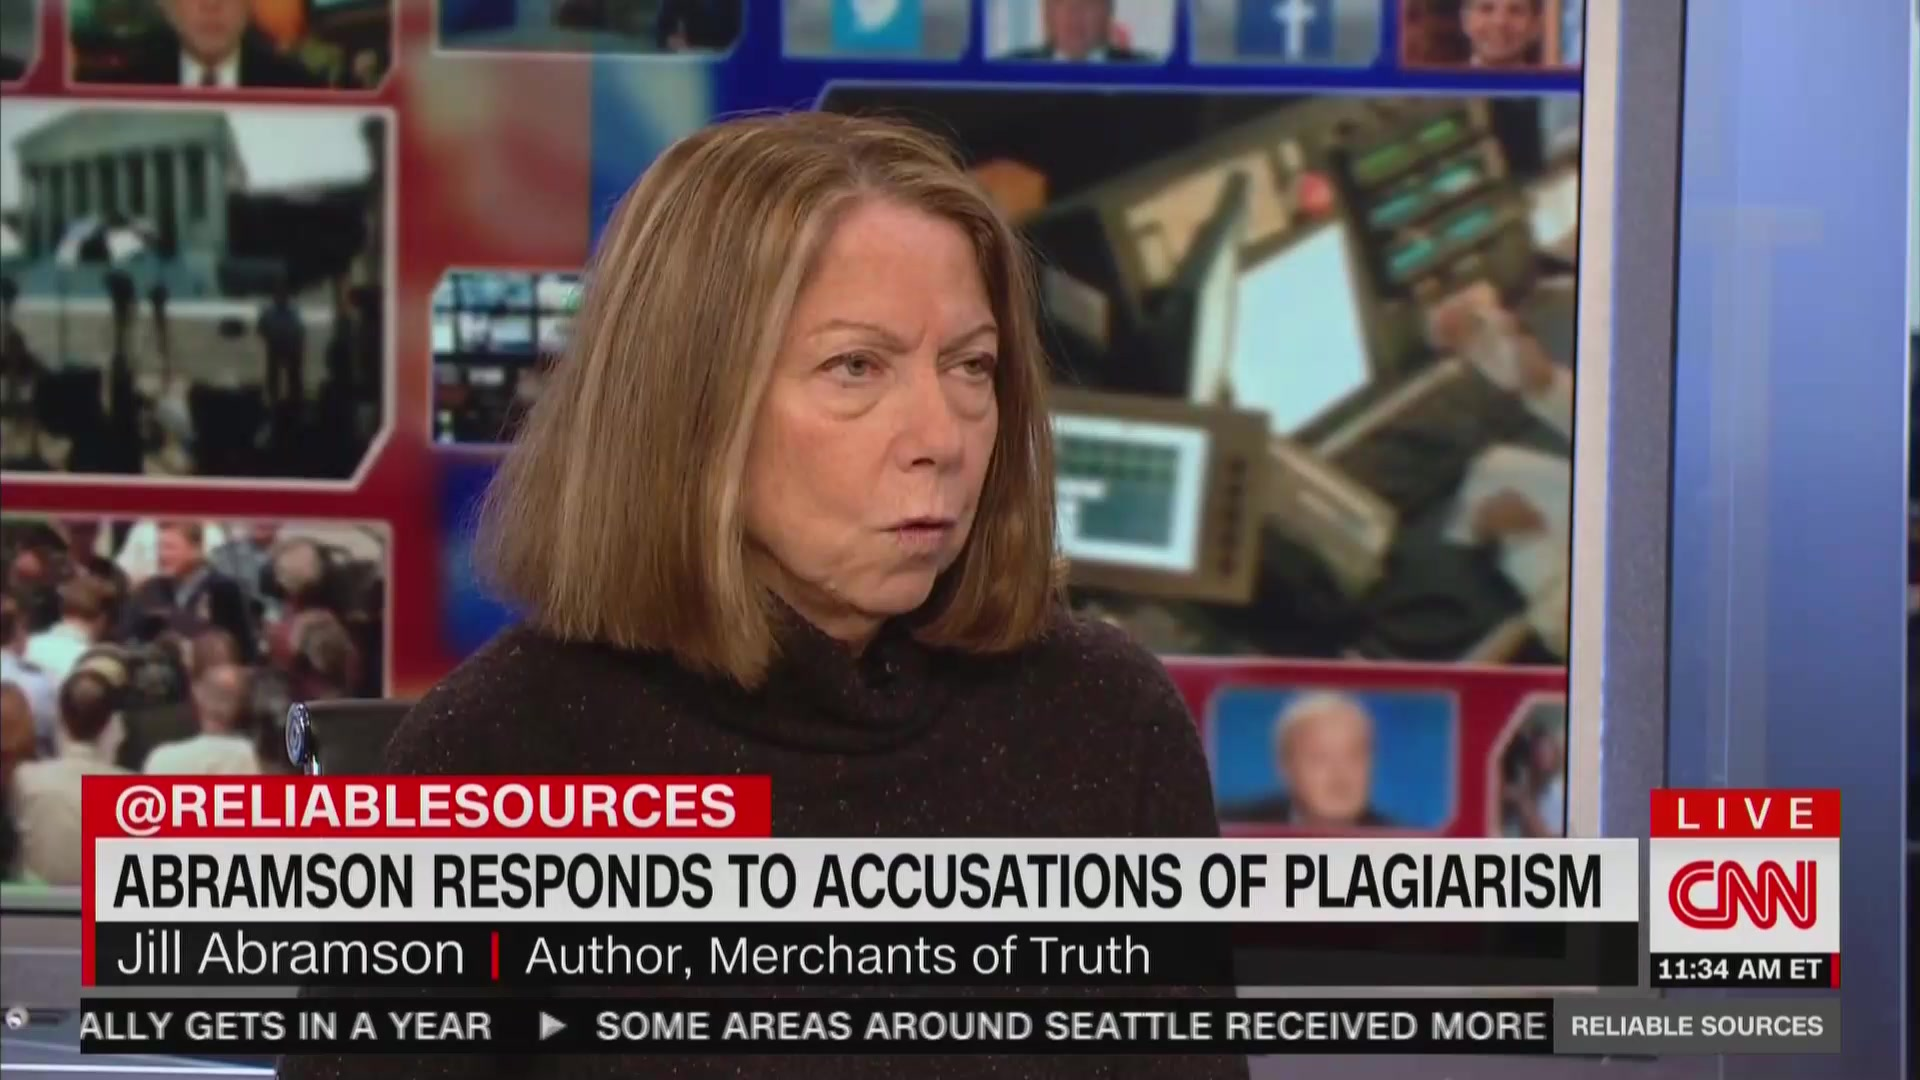 Jill Abramson Won't Own Up To Plagiarism, Blames Controversy On Vice 'Oppo Campaign'